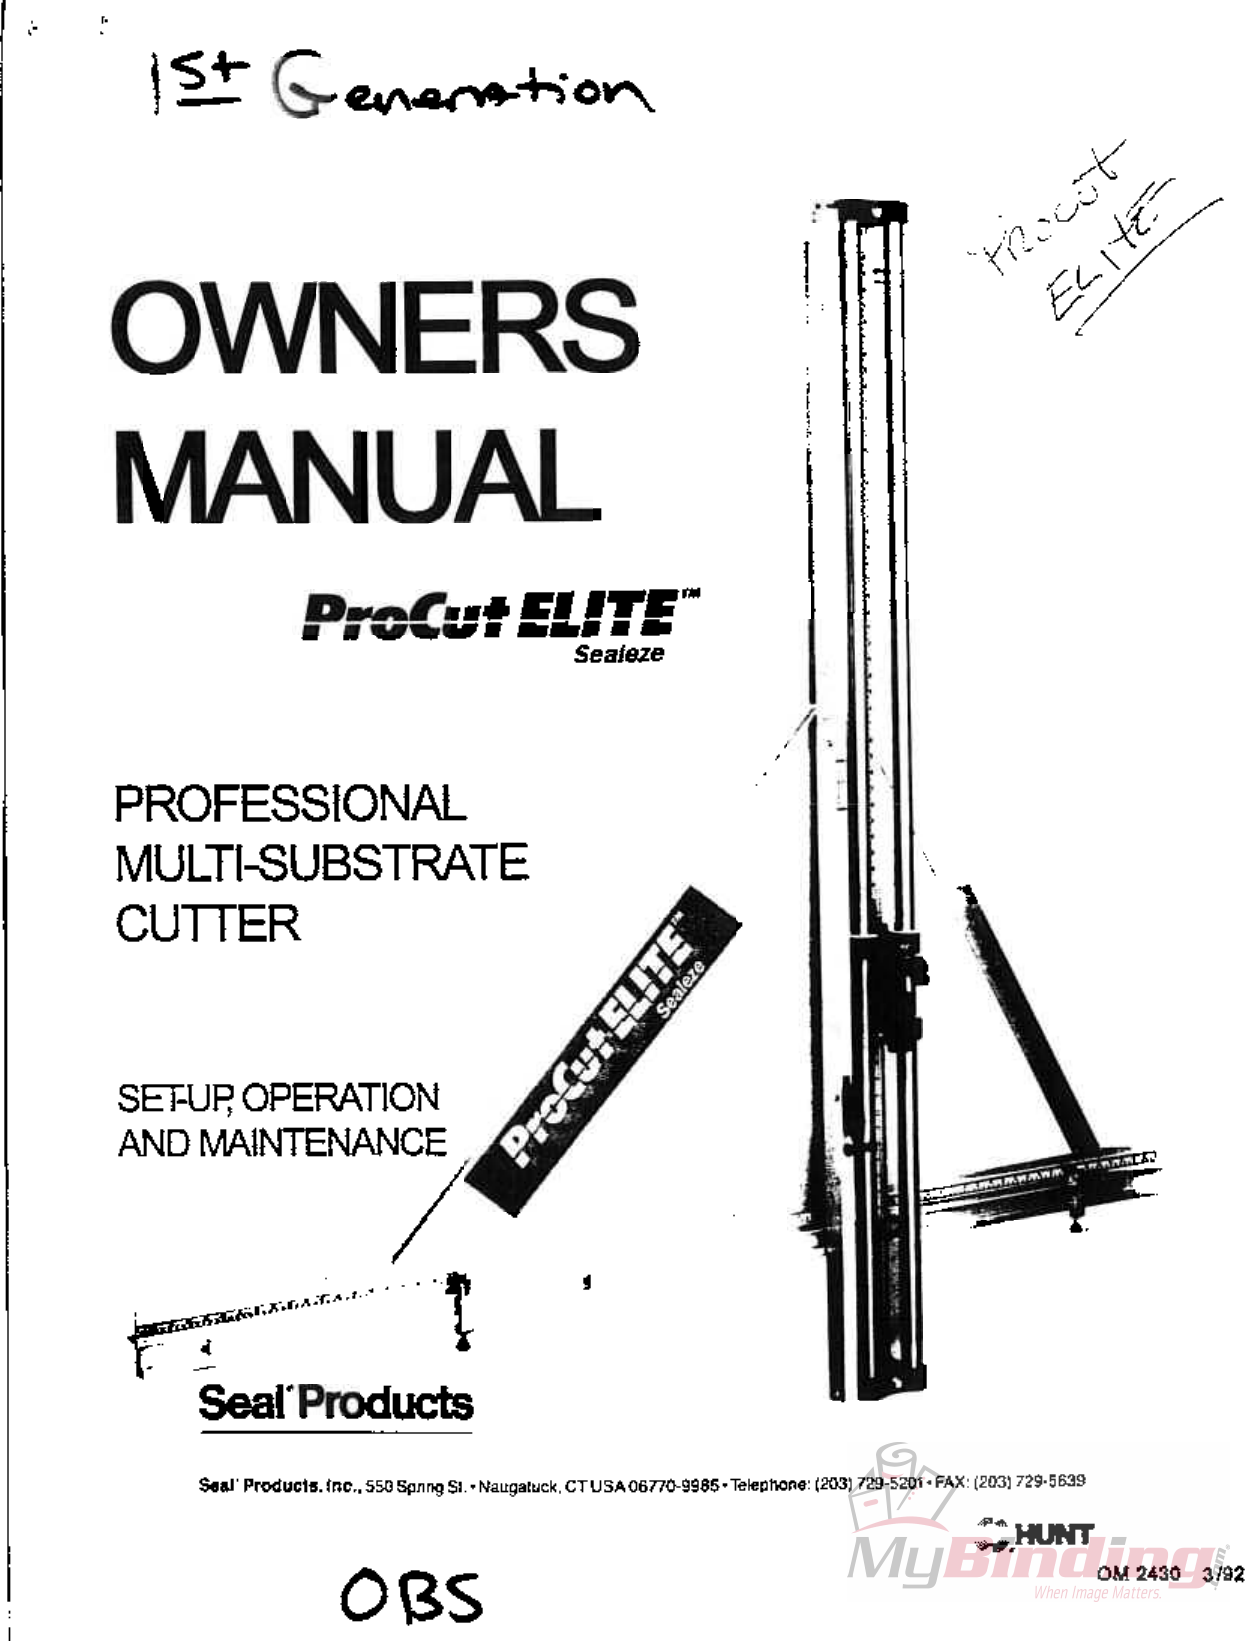 MyBinding Seal Procut Elite Manual User Pro Cut